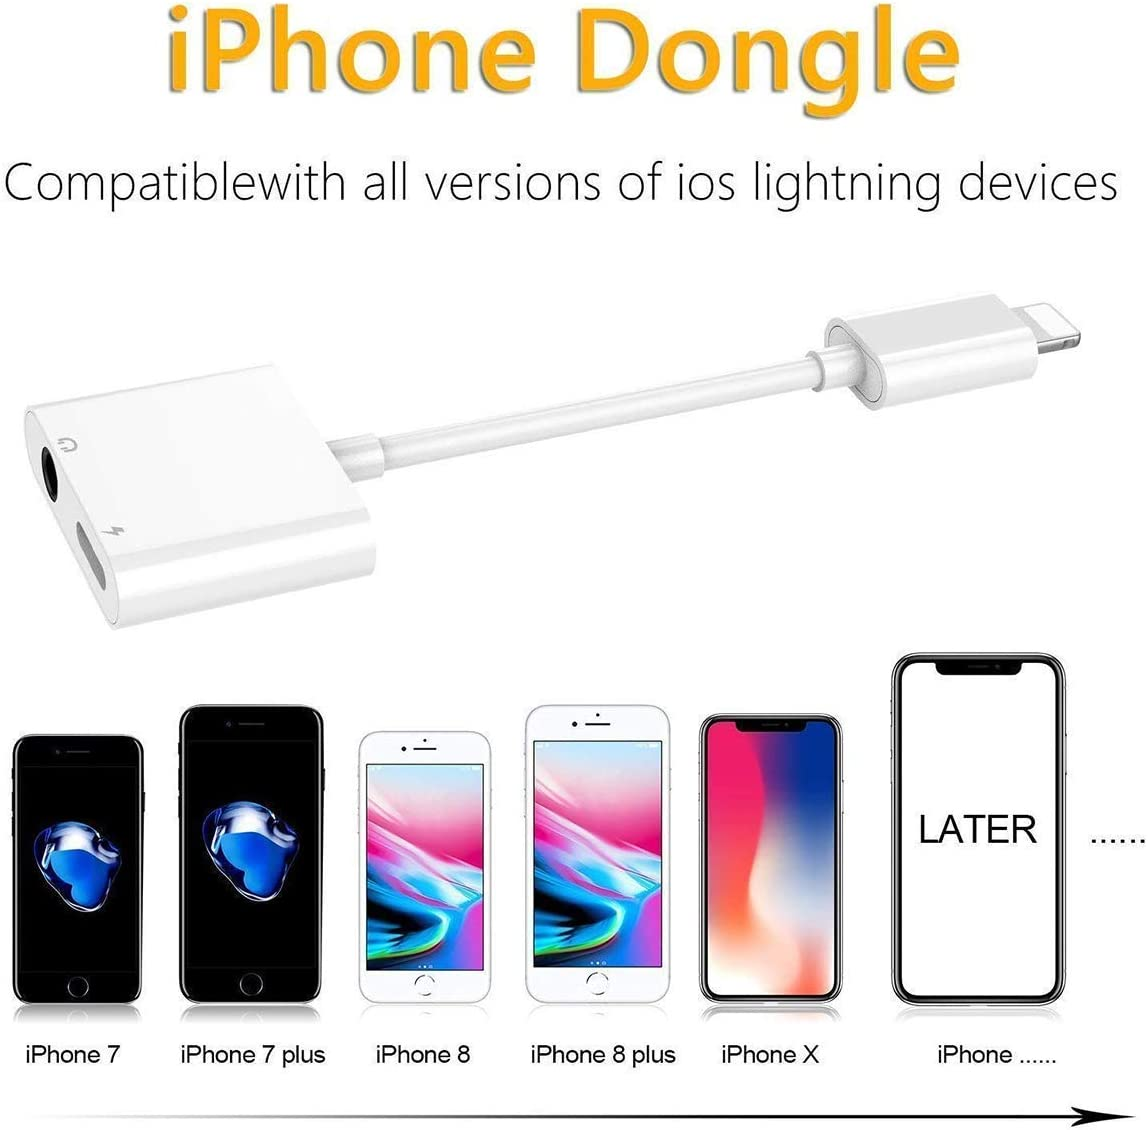 Headphone Jack Adapter Dongle for iPhone 11//Xs//XR// 8//X //7 Lightning to 3.5 mm Headphone Jack Adapter Apple MFi Certified 2 in 1 Earphone Audio/&Charger Splitter Adapter Connector Jack Accessories